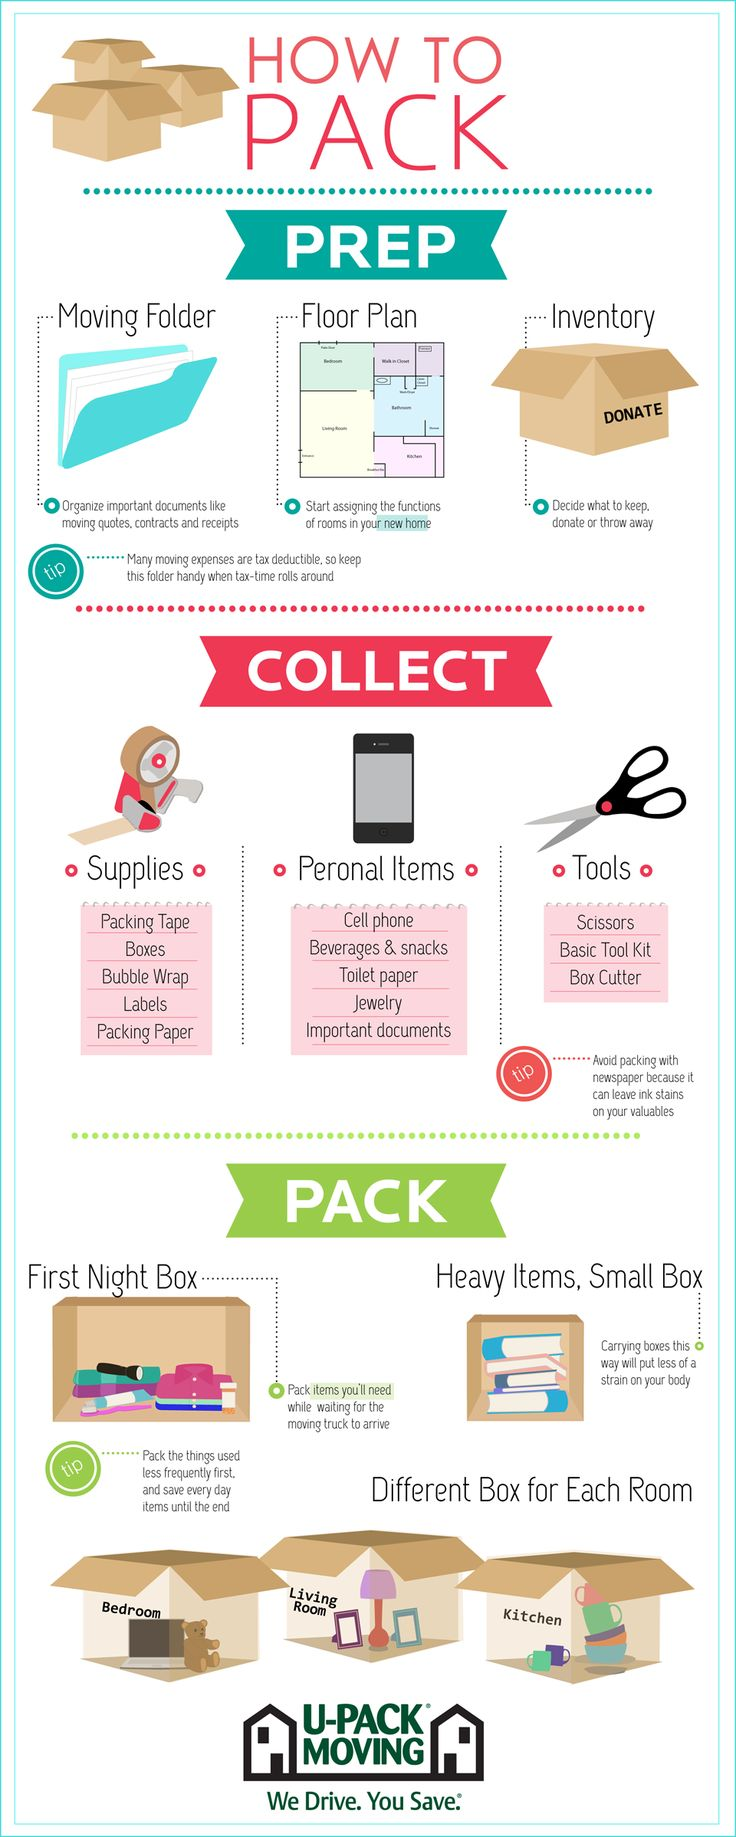 How to pack for moving | Infographic